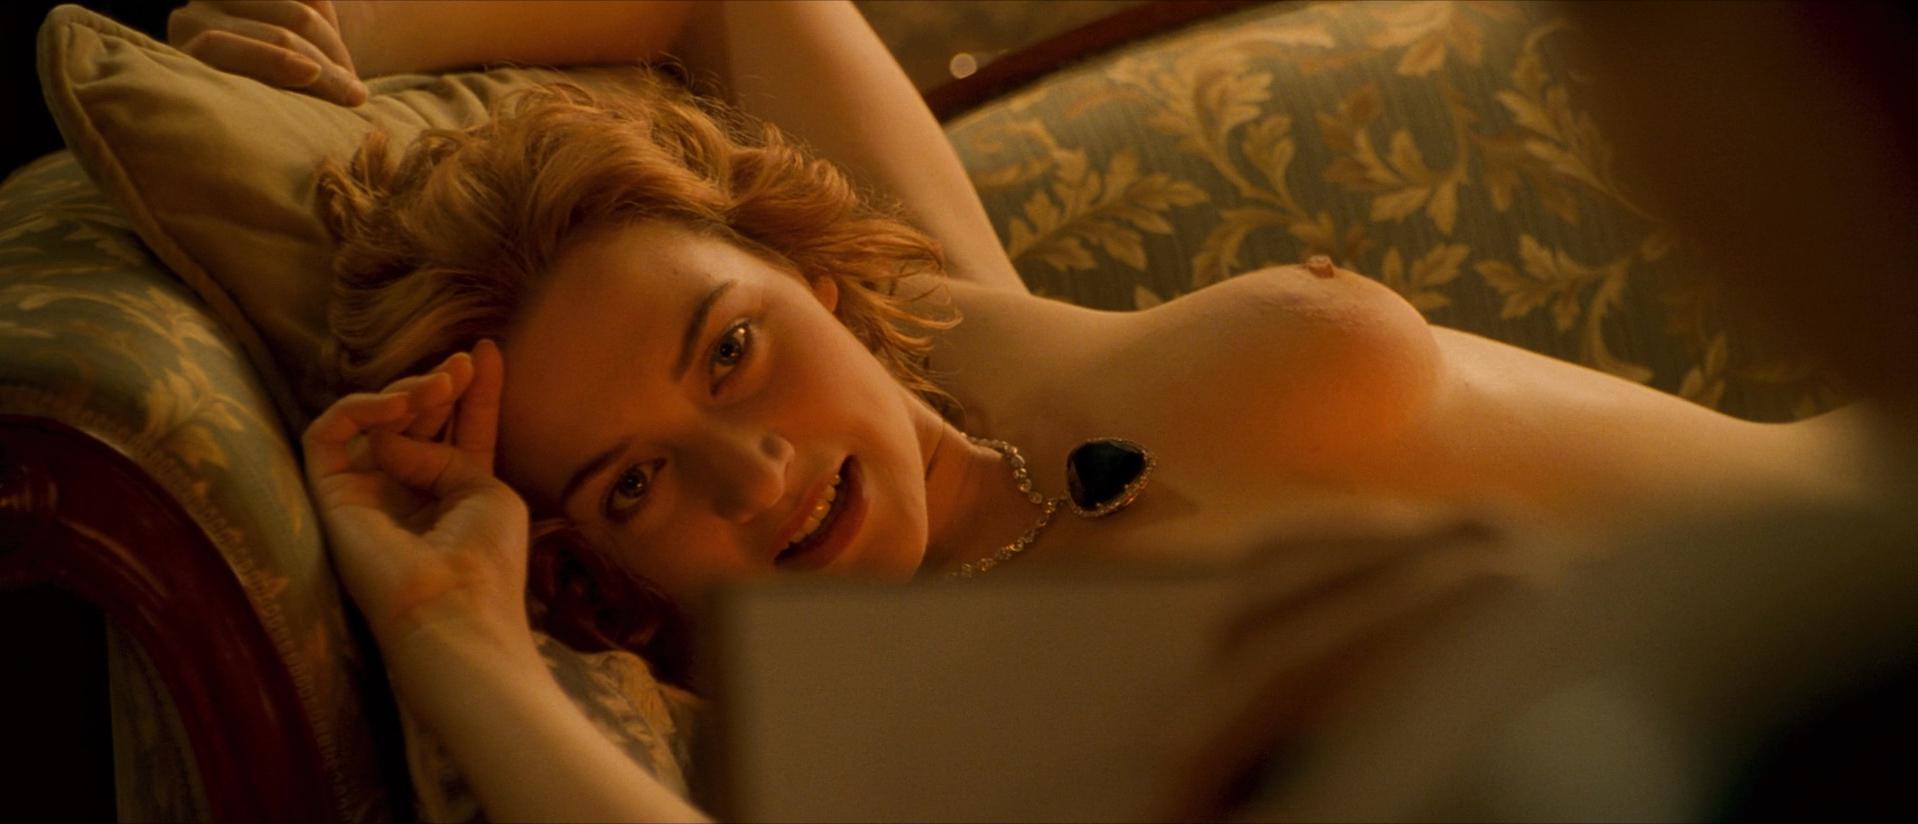 Kate winslet puss xxx photos